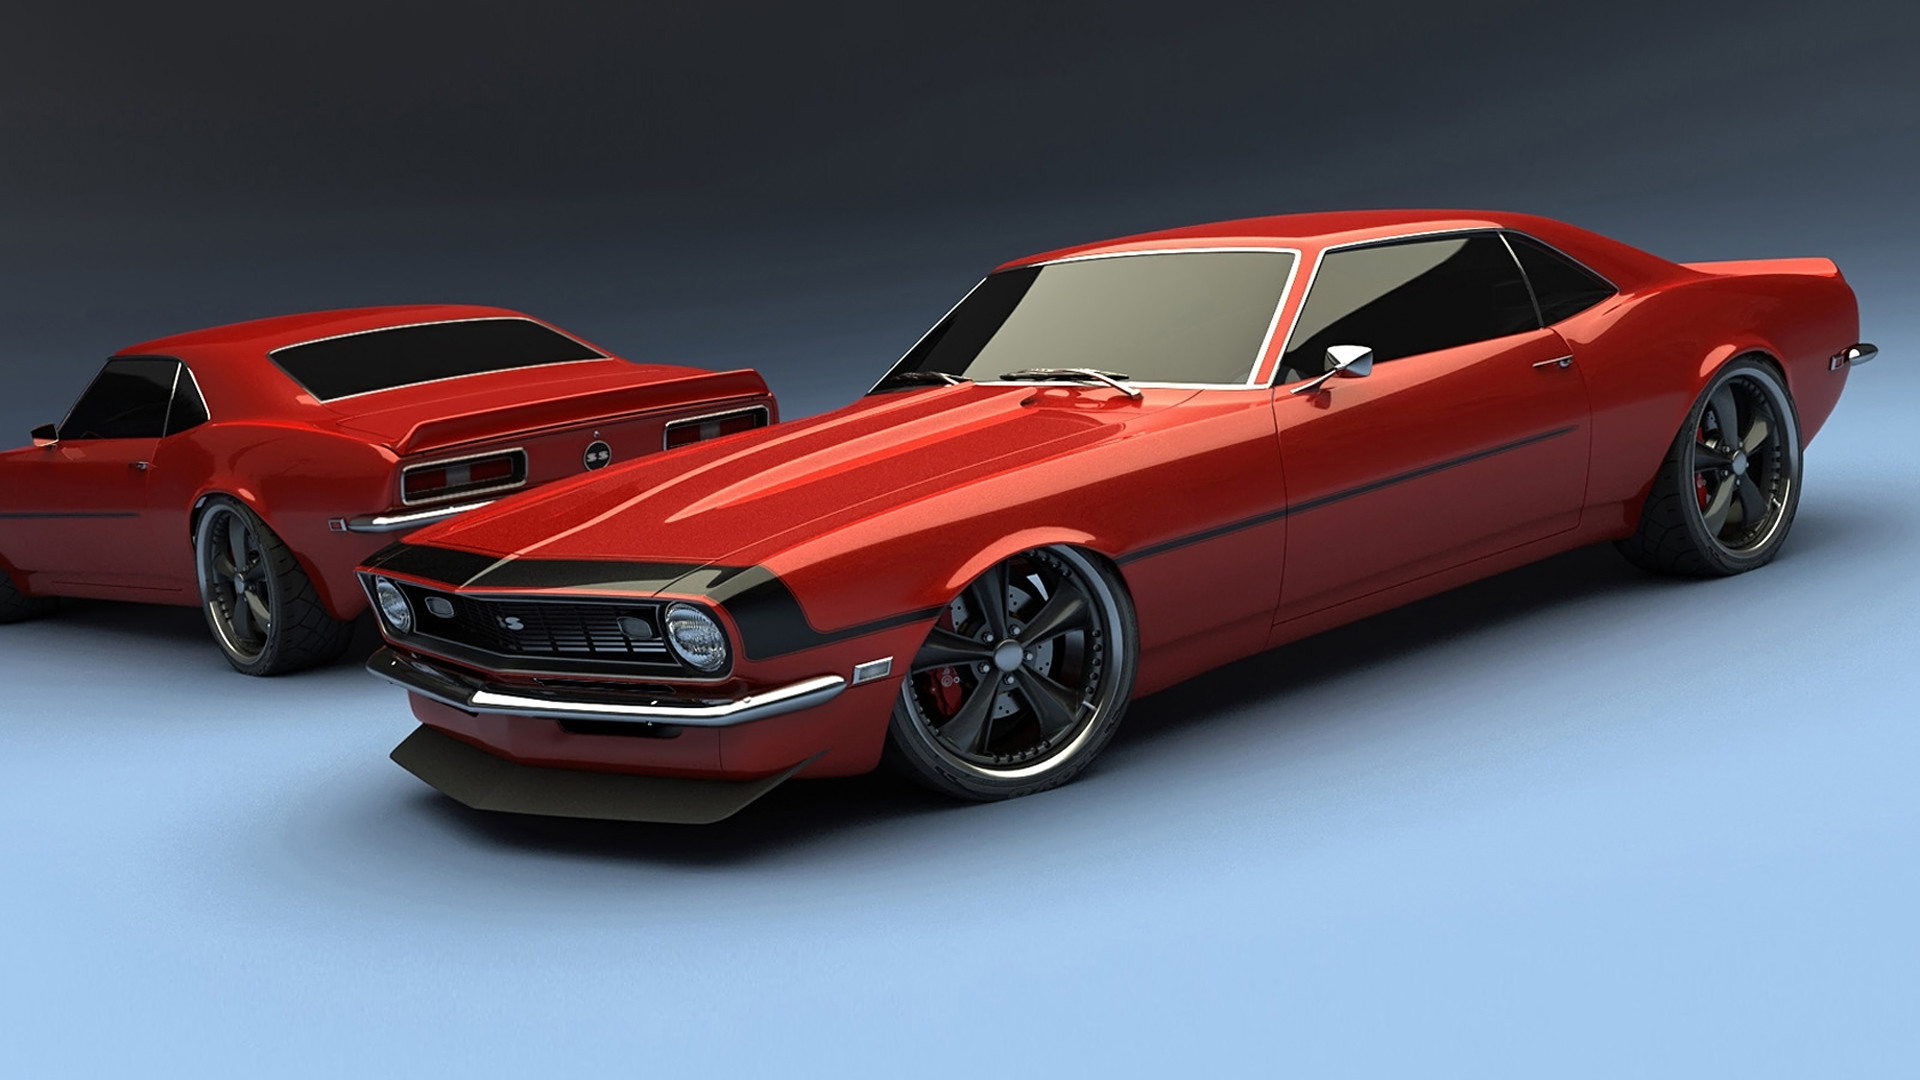 69 Chevelle Wallpapers with HD Wallpaper Resolution px 454.21 KB  Car 1970 Iphone Ss 72